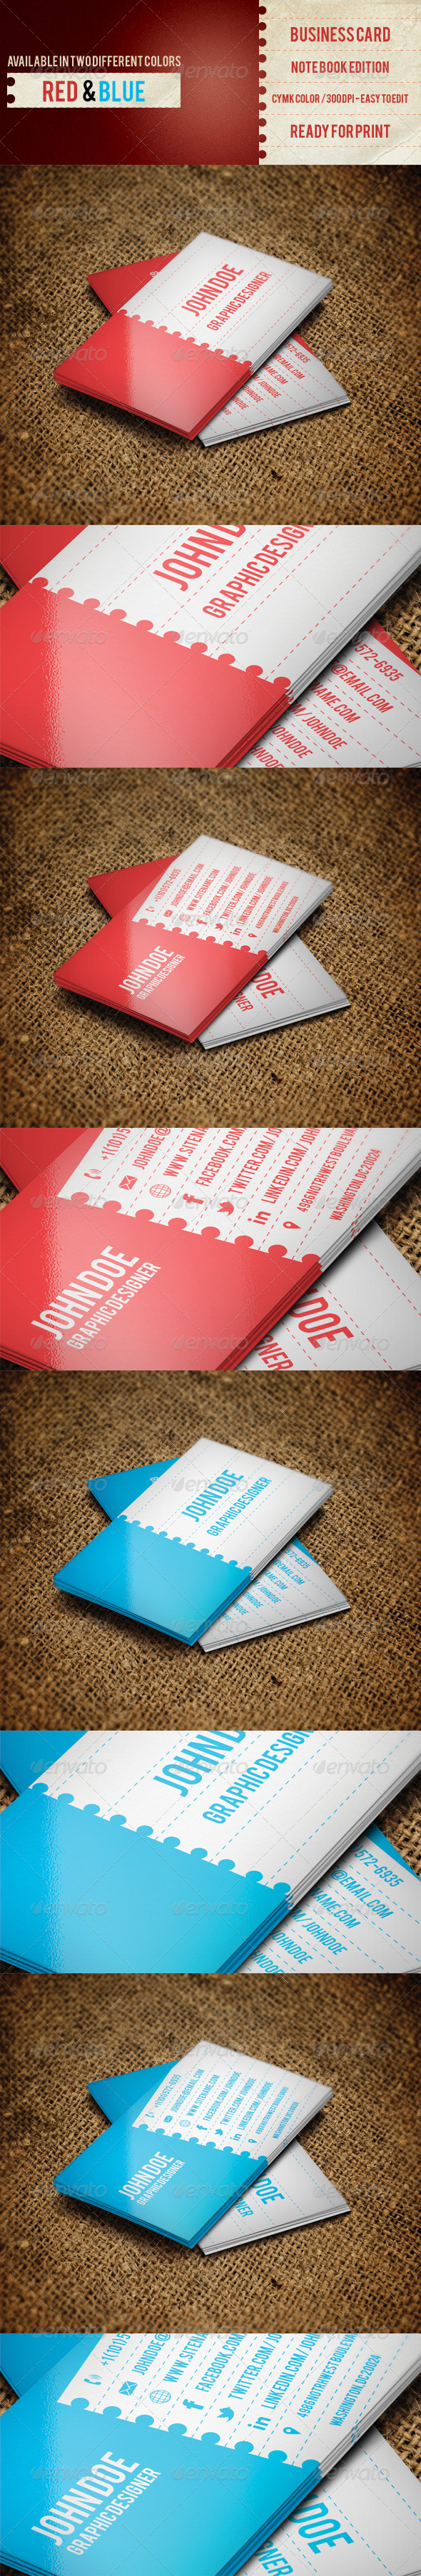 Business Card NoteBook Edition - Business Cards Print Templates